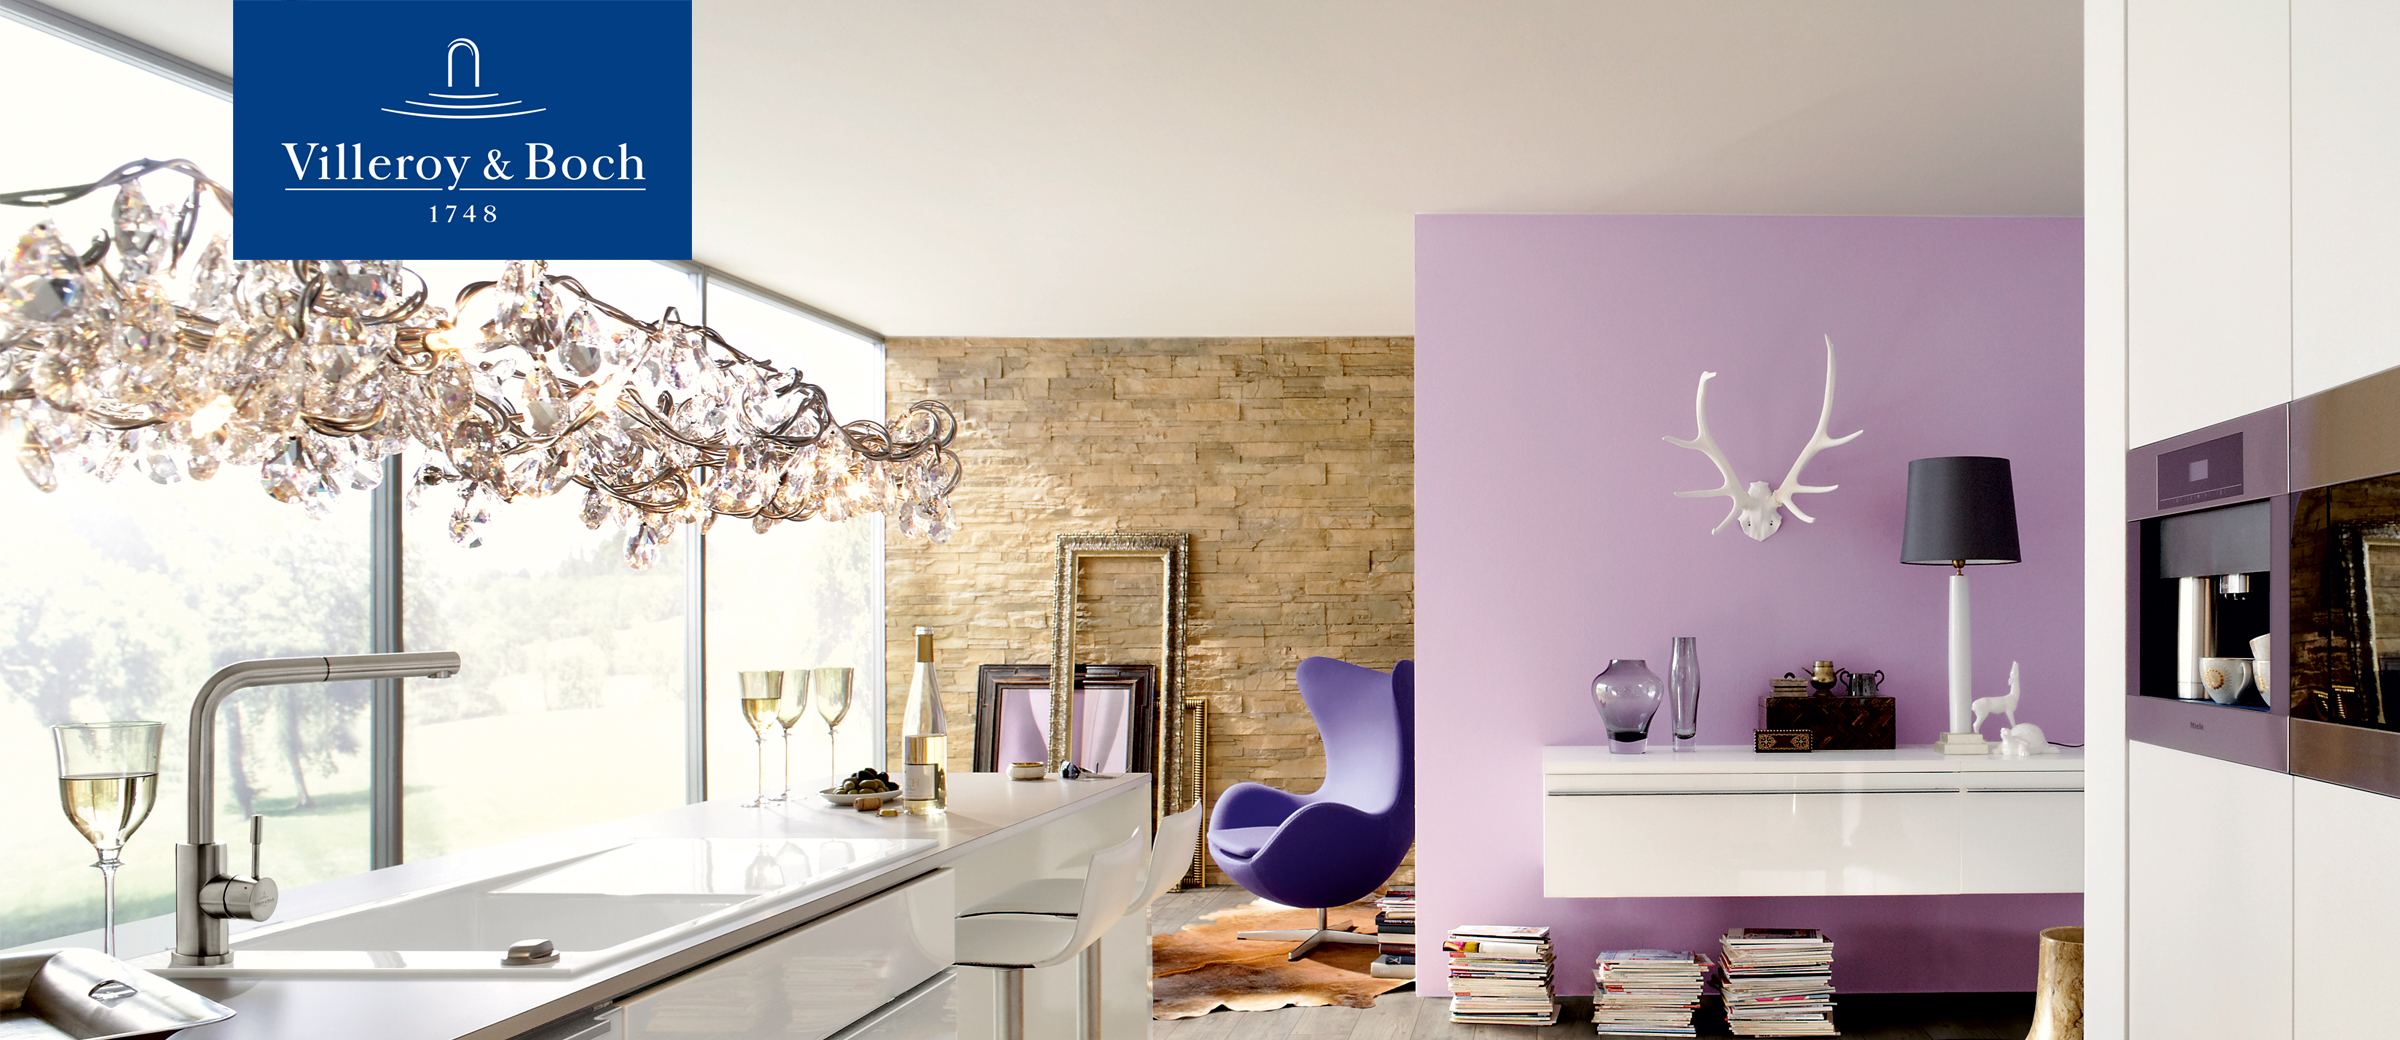 Villeroy and Boch collection with high-quality laminate flooring and exclusive wooden decors.